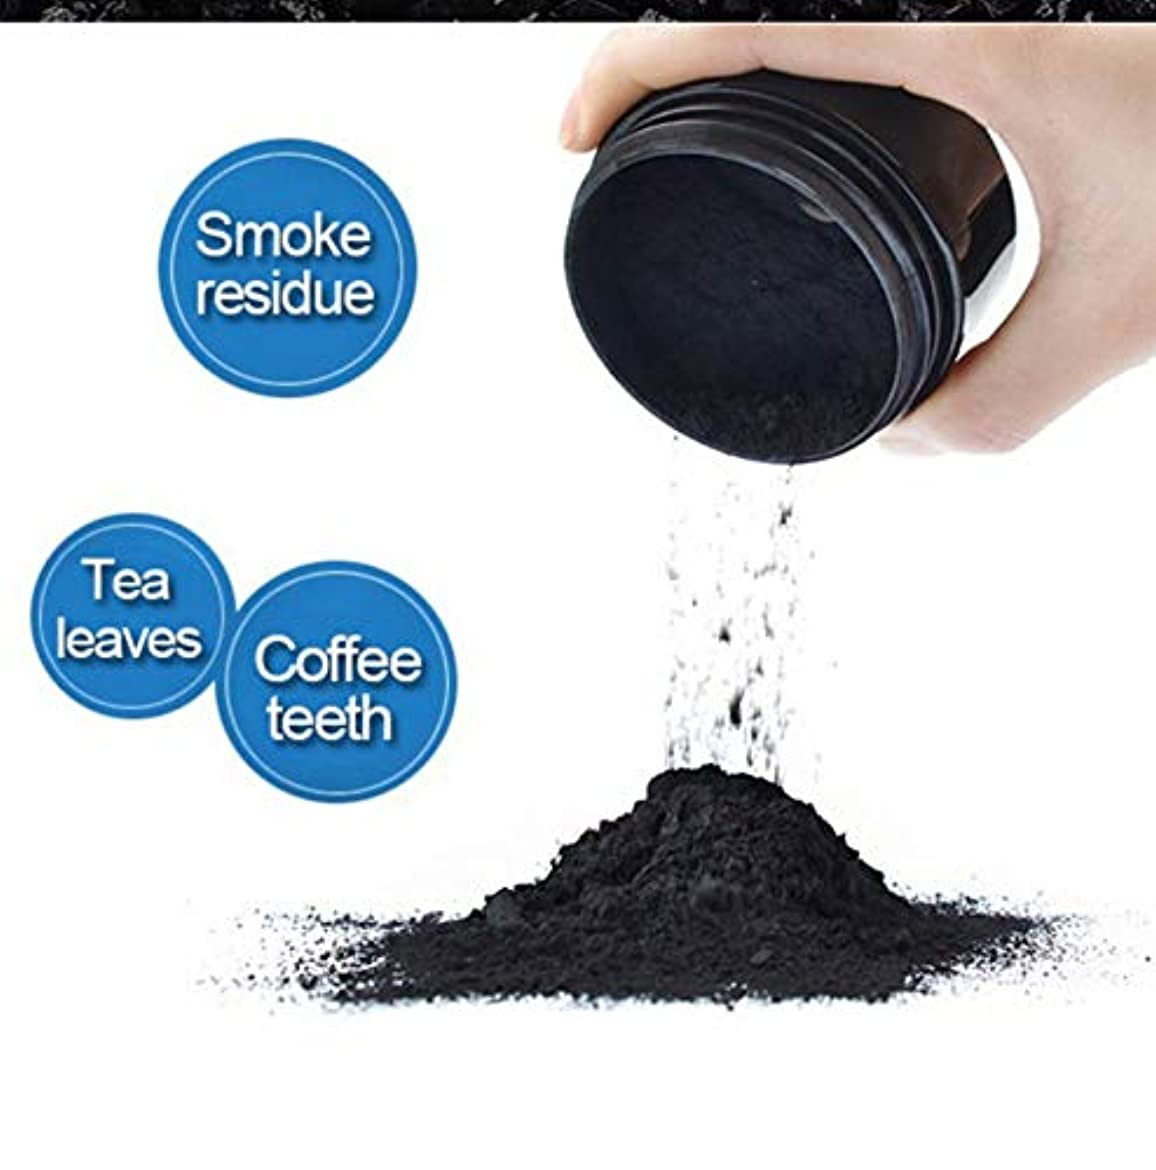 モザイク層ゆるいDaily Use Teeth Whitening Scaling Powder Oral Hygiene Cleaning Packing Premium Activated Bamboo Charcoal Powder...